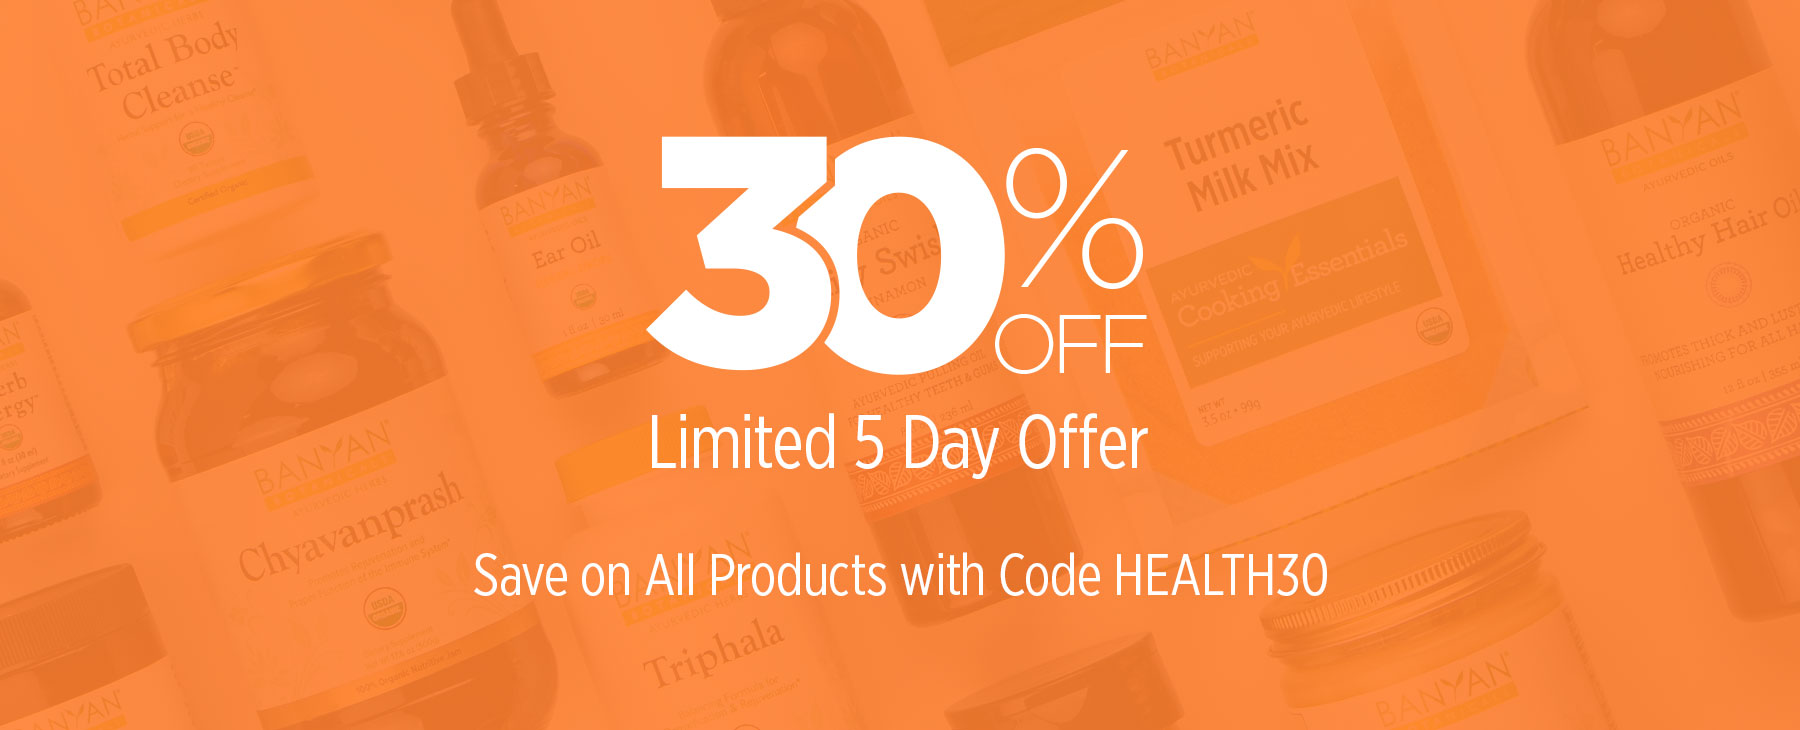 30% Off! Limited 5 Day Offer—Save on All Products